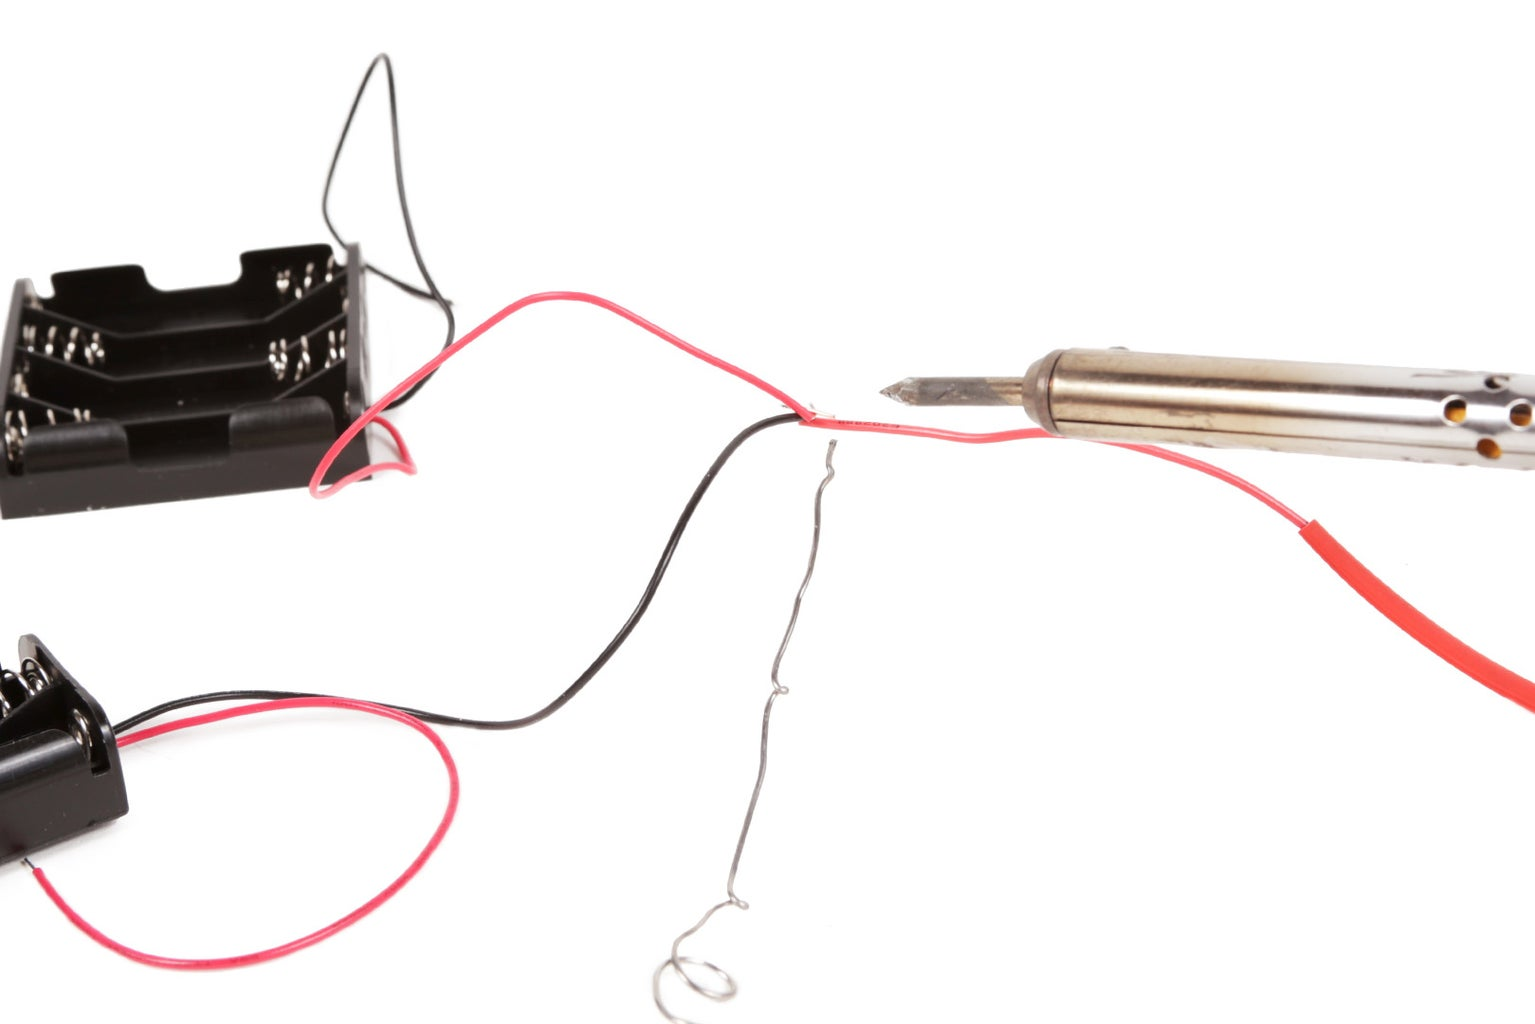 Connecting the Wiring Harness